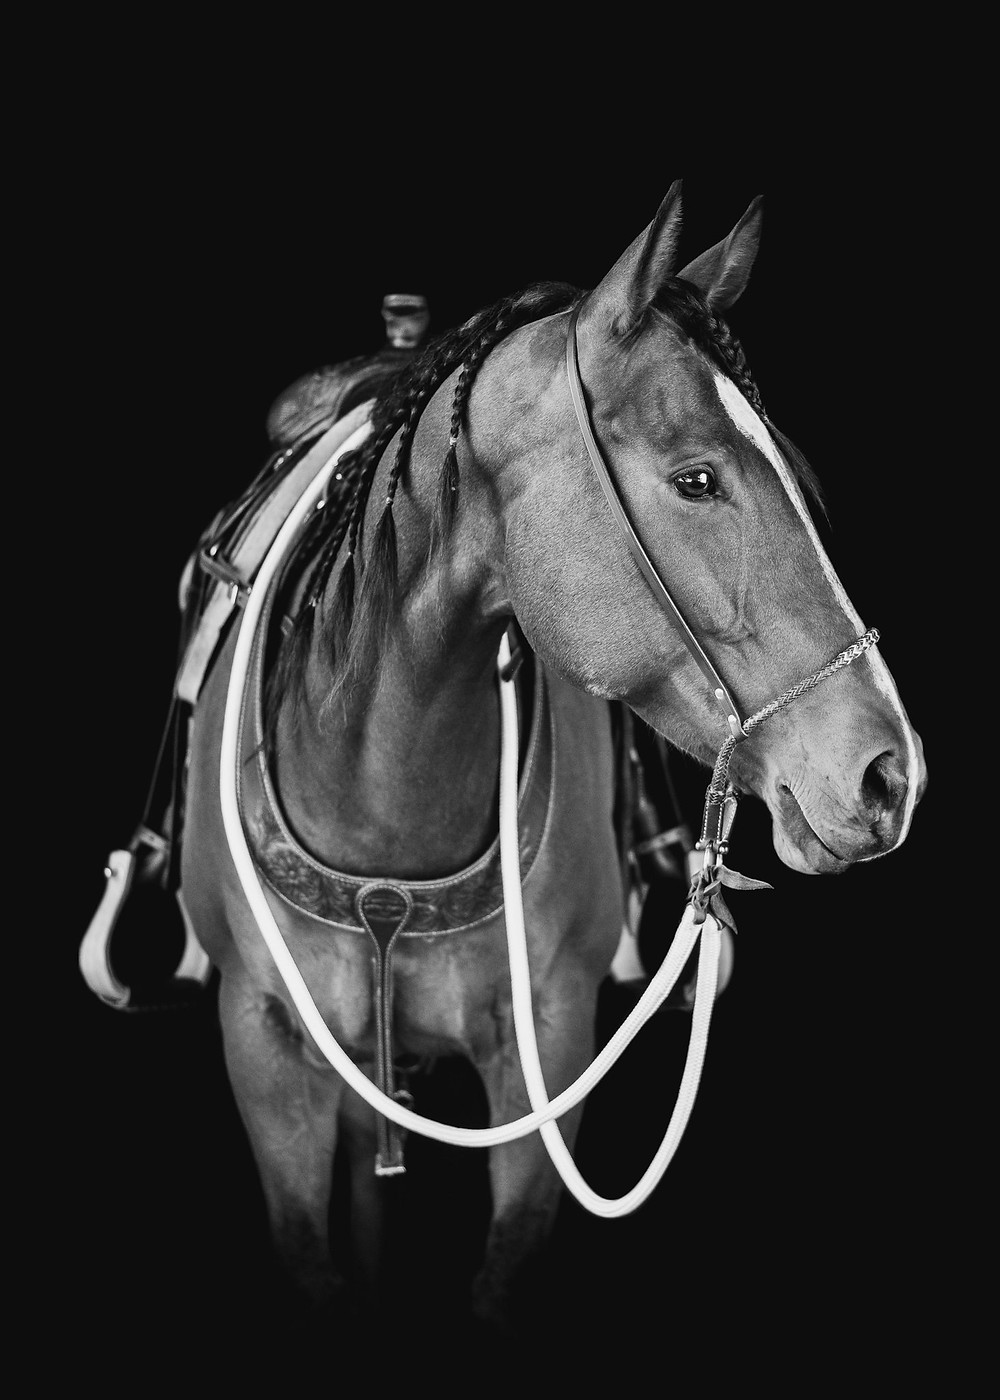 a black and white image of Rhodie, a quarter horse mare, on a black background